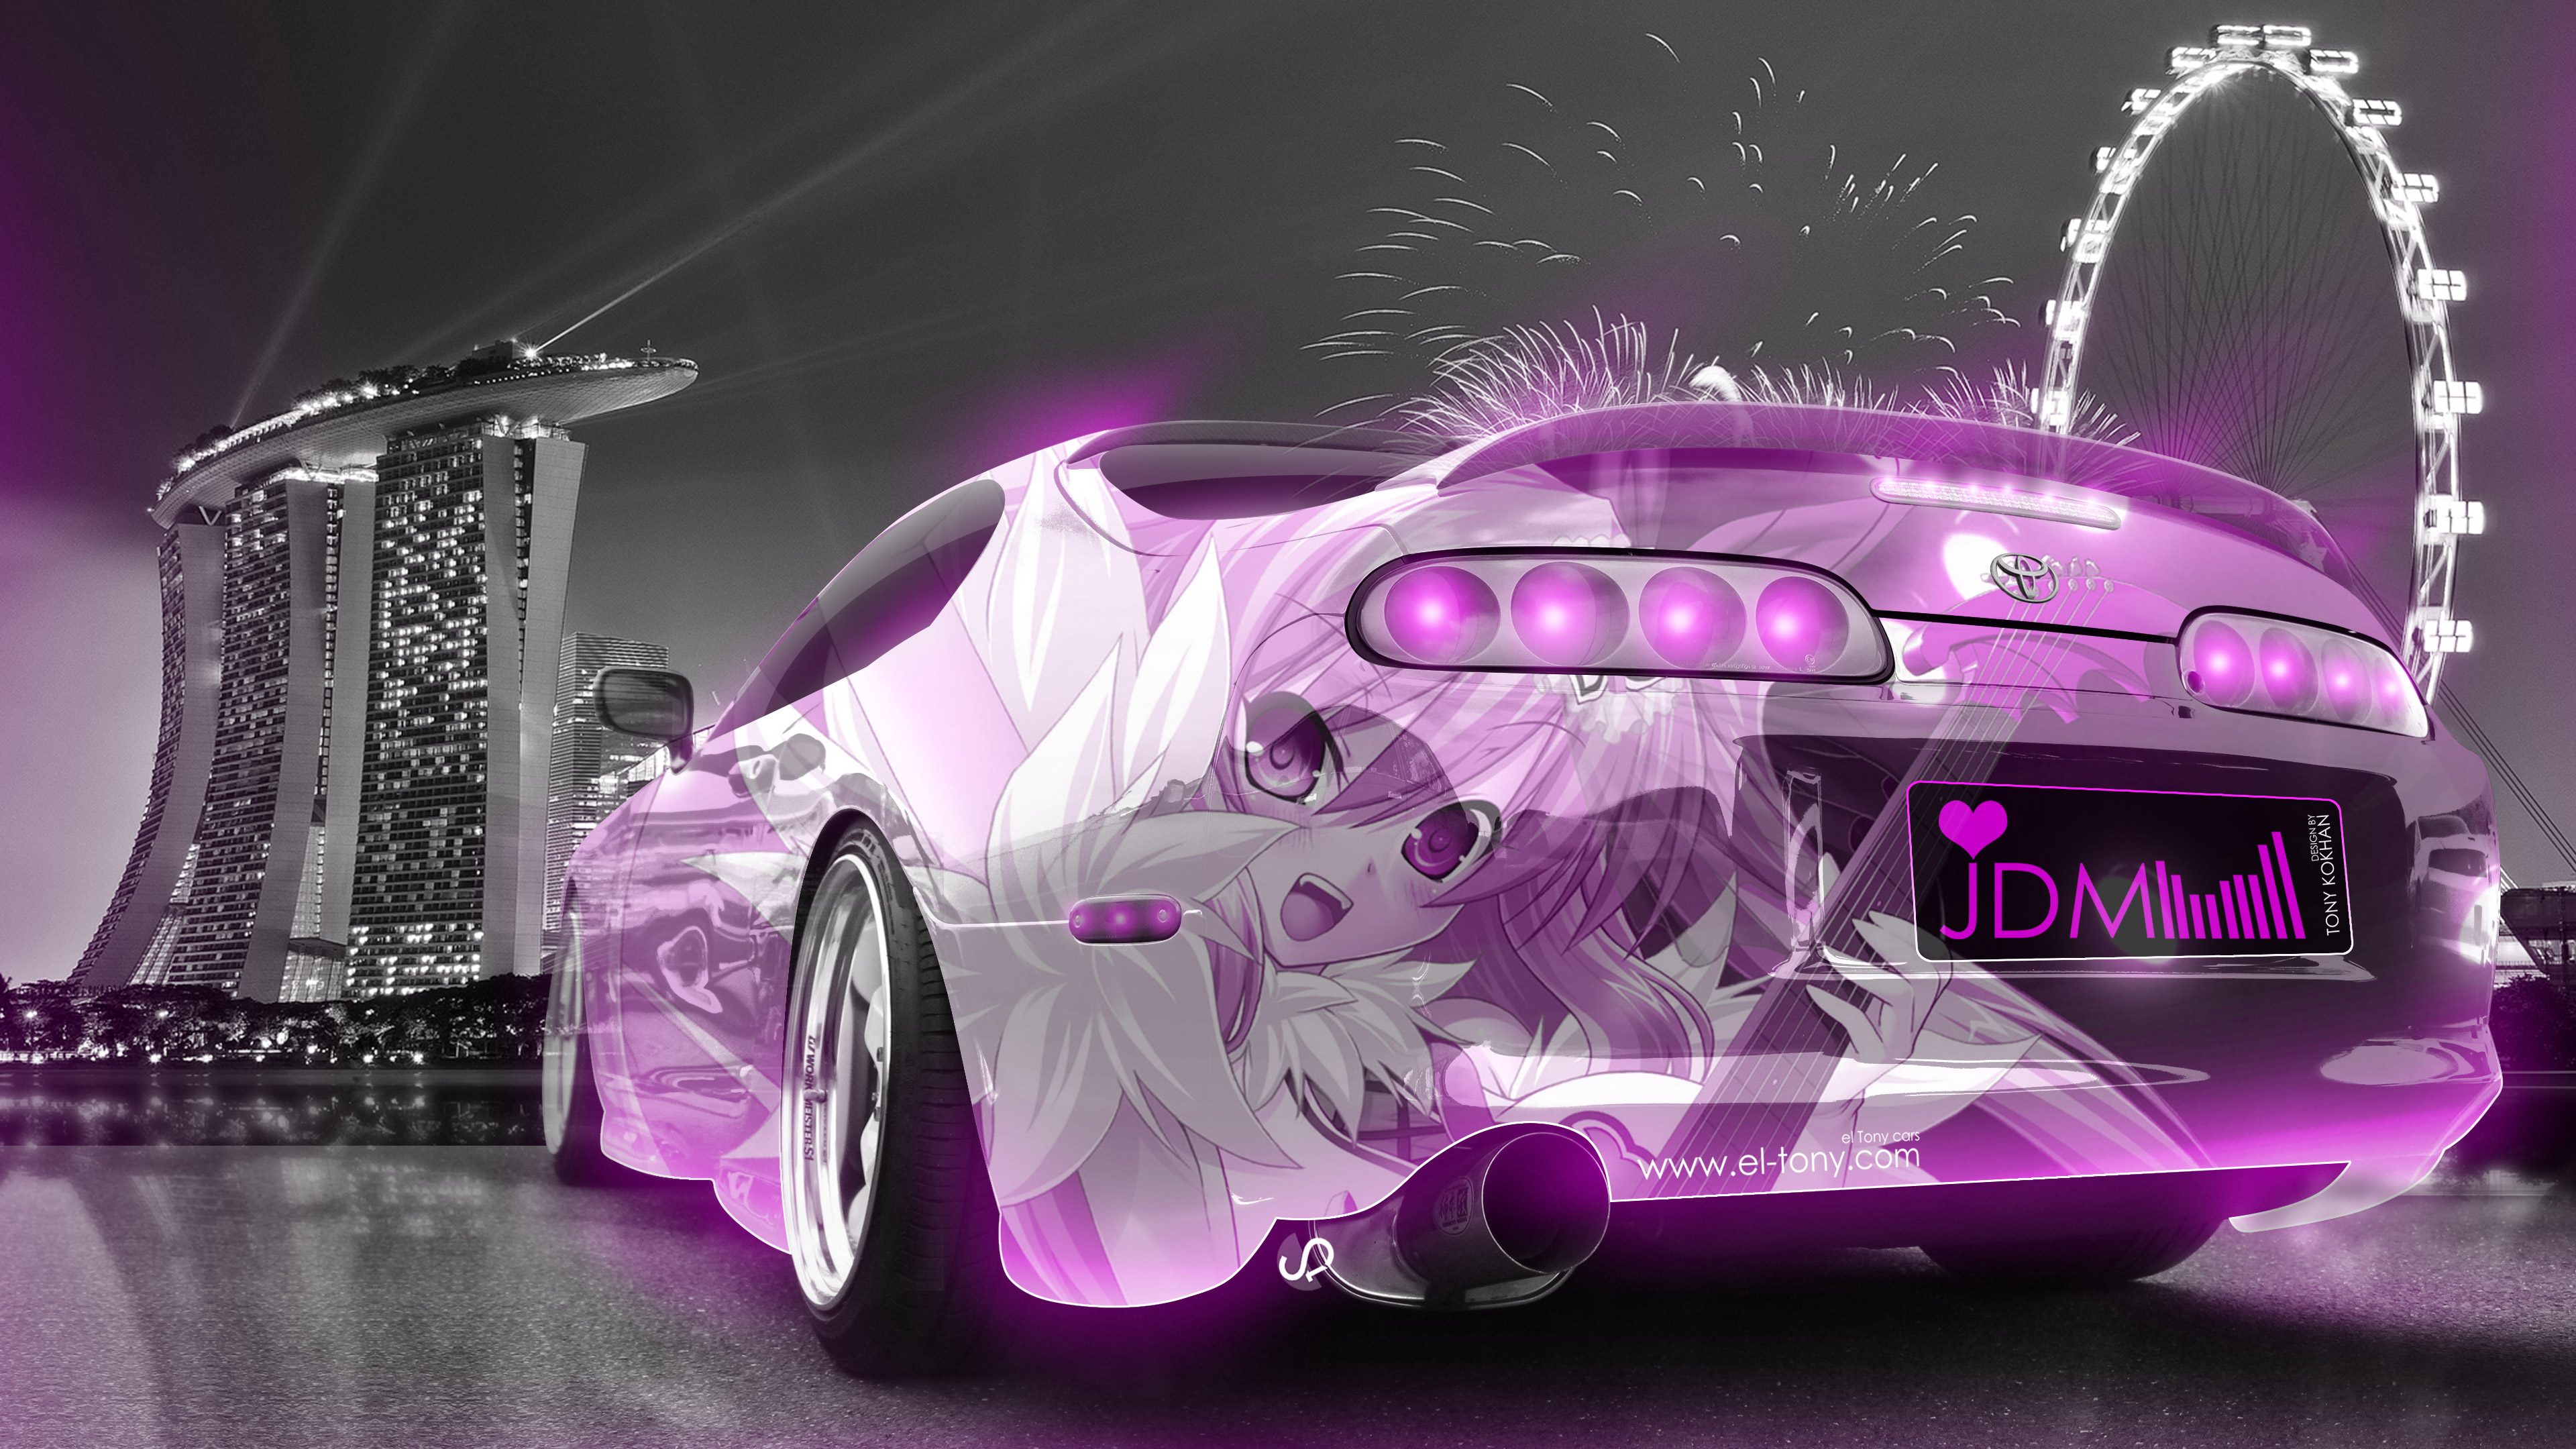 2015 Toyota Supra >> Toyota Supra JDM Tuning Anime Girl Aerography City Car 2015 | el Tony